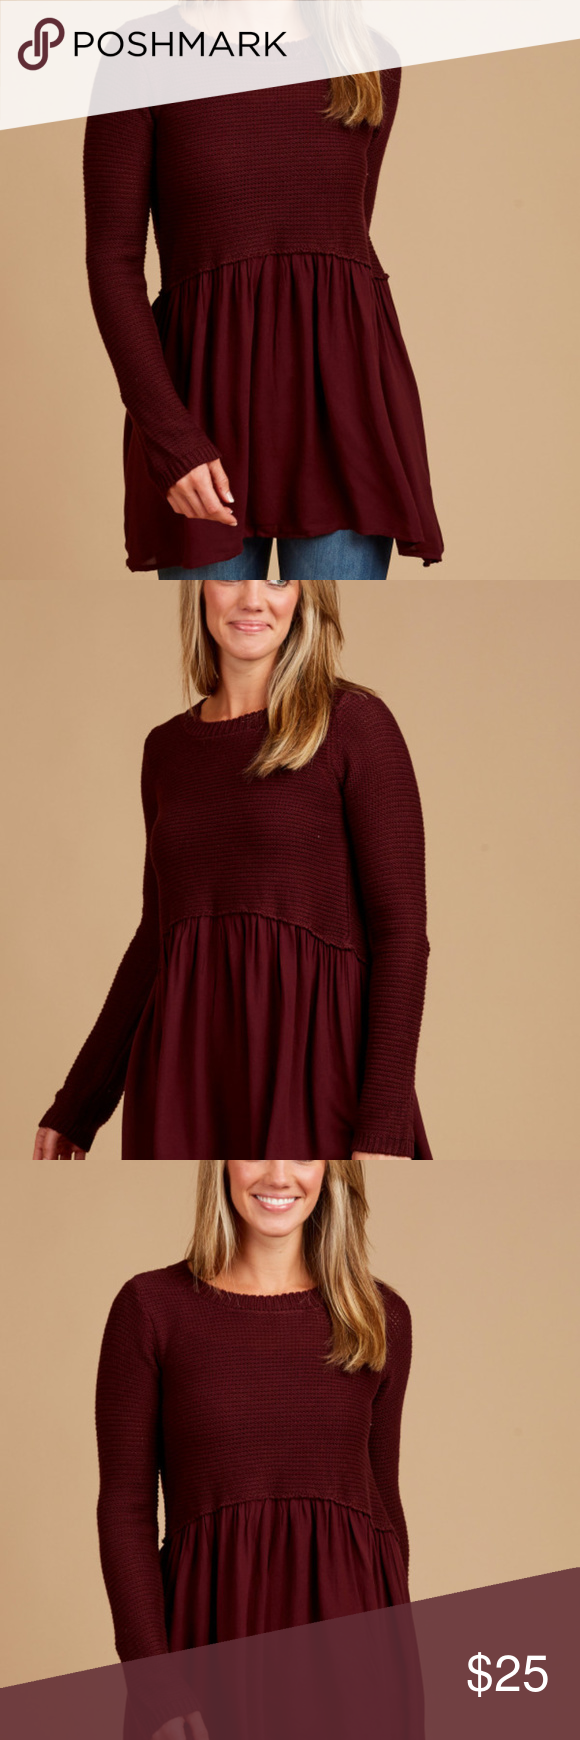 2974dc545b Altar d State Burgundy Marianna Sweater Altar d State Burgundy Marianna  Sweater in Burgundy. Size small. No signs of wear. Super comfy.